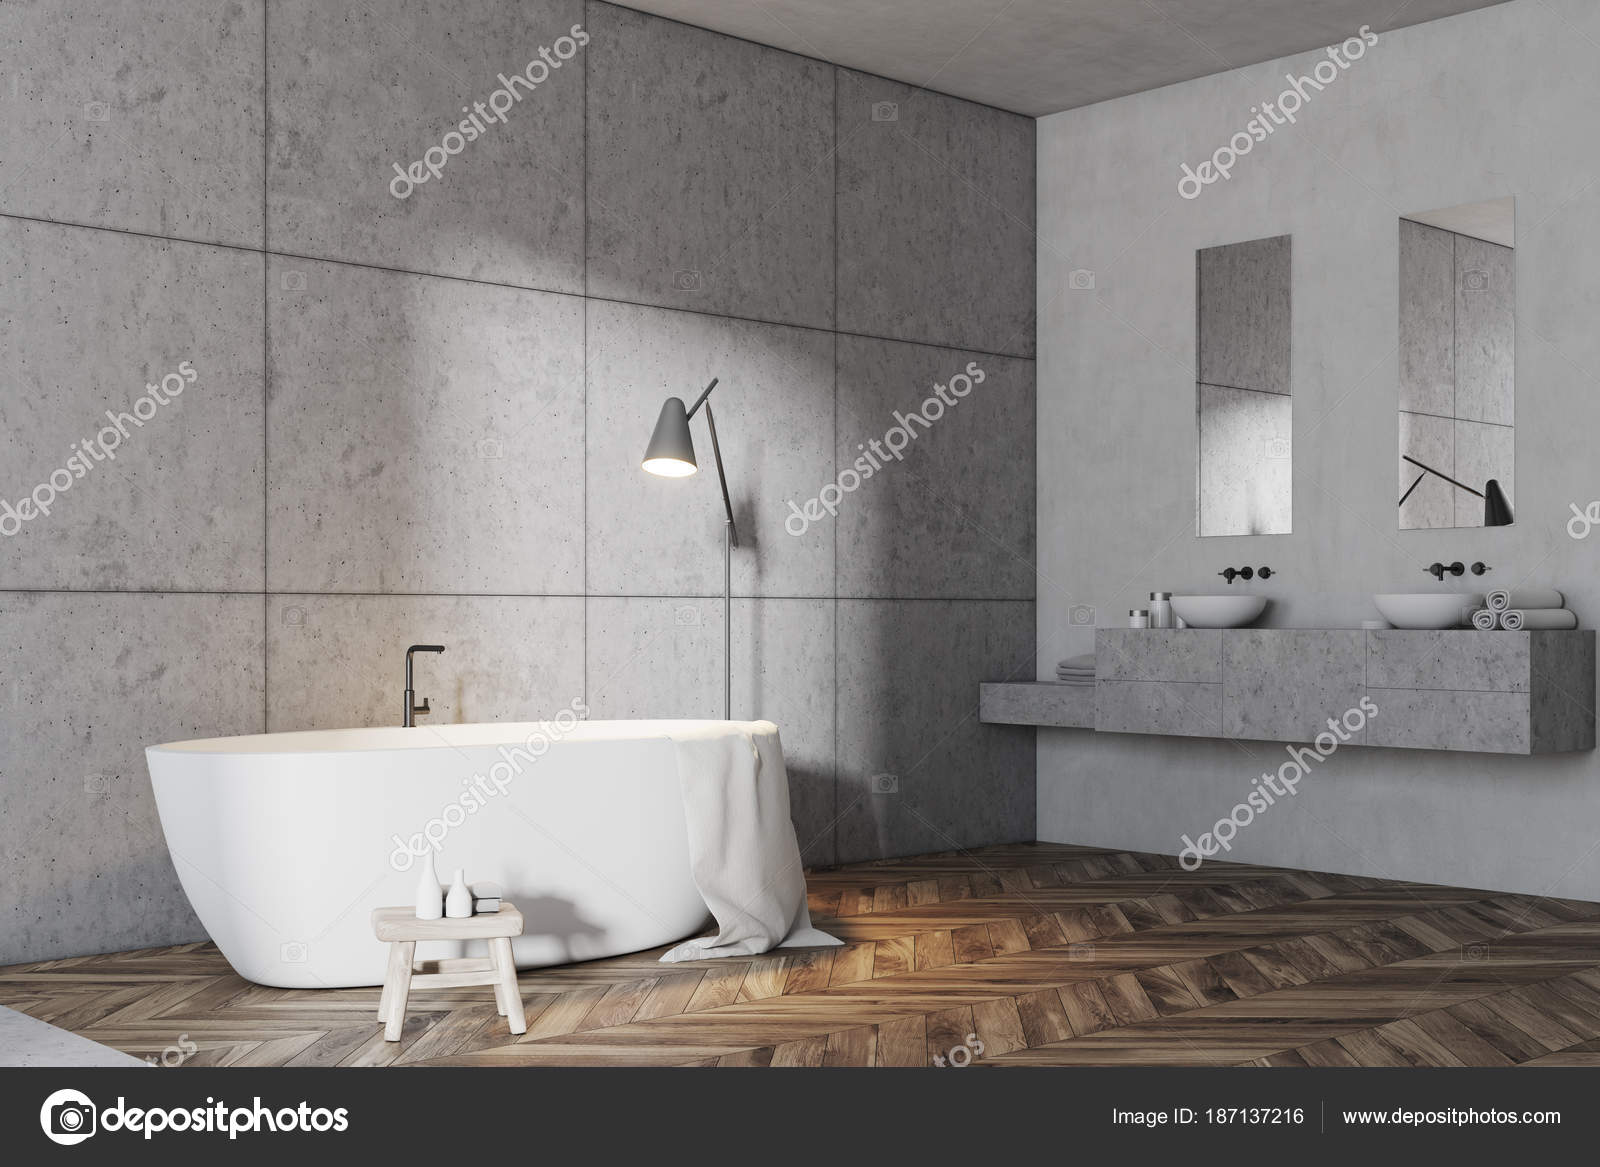 carrelage gris salle de bains baignoire d angle blanc photographie denisismagilov 187137216. Black Bedroom Furniture Sets. Home Design Ideas